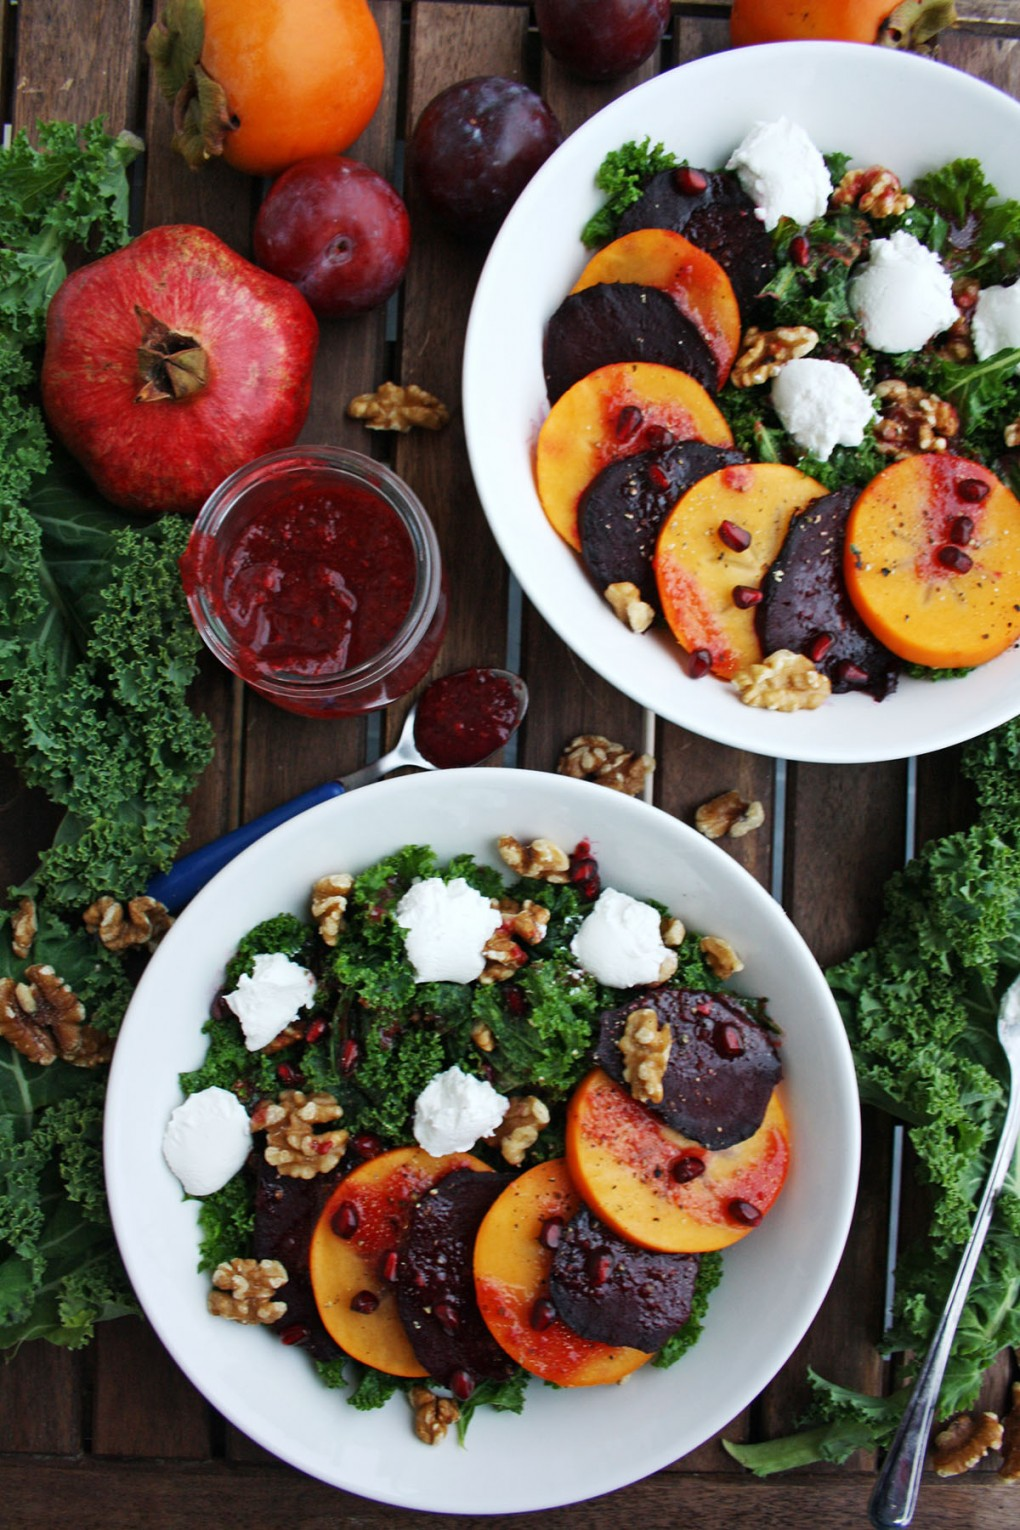 Persimmon Beet Salad with Goat Cheese and Kale